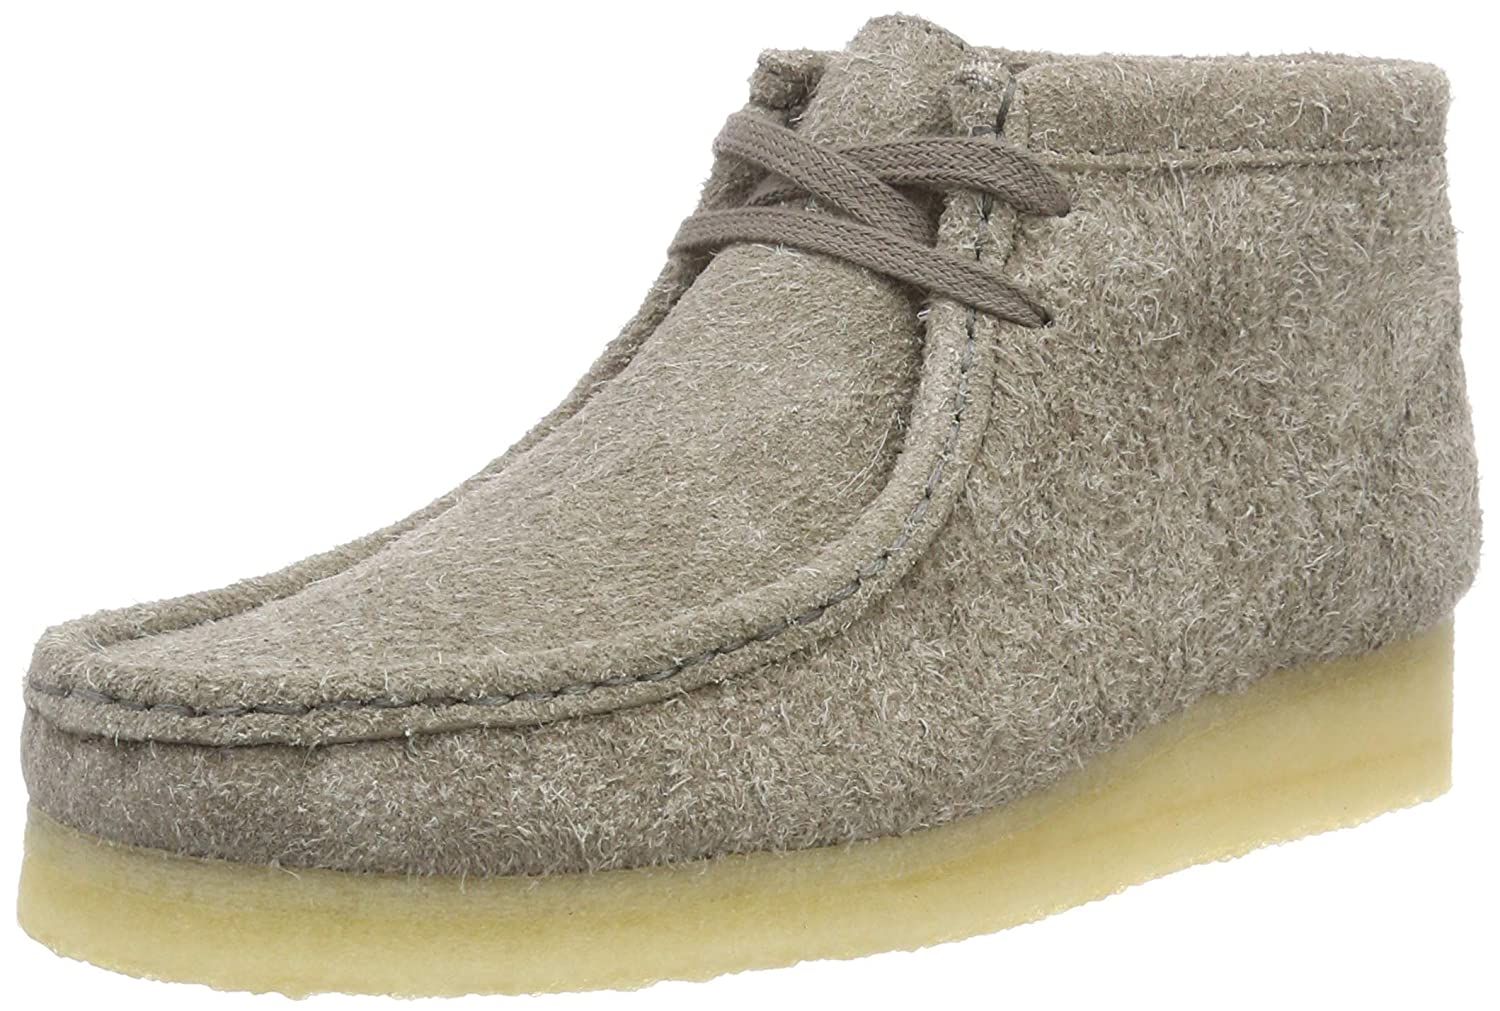 Clarks Wallabee Originals Wallabee Clarks Boot, Botines Femme - B07B8YZMD9 - Bottes et bottines 76a488